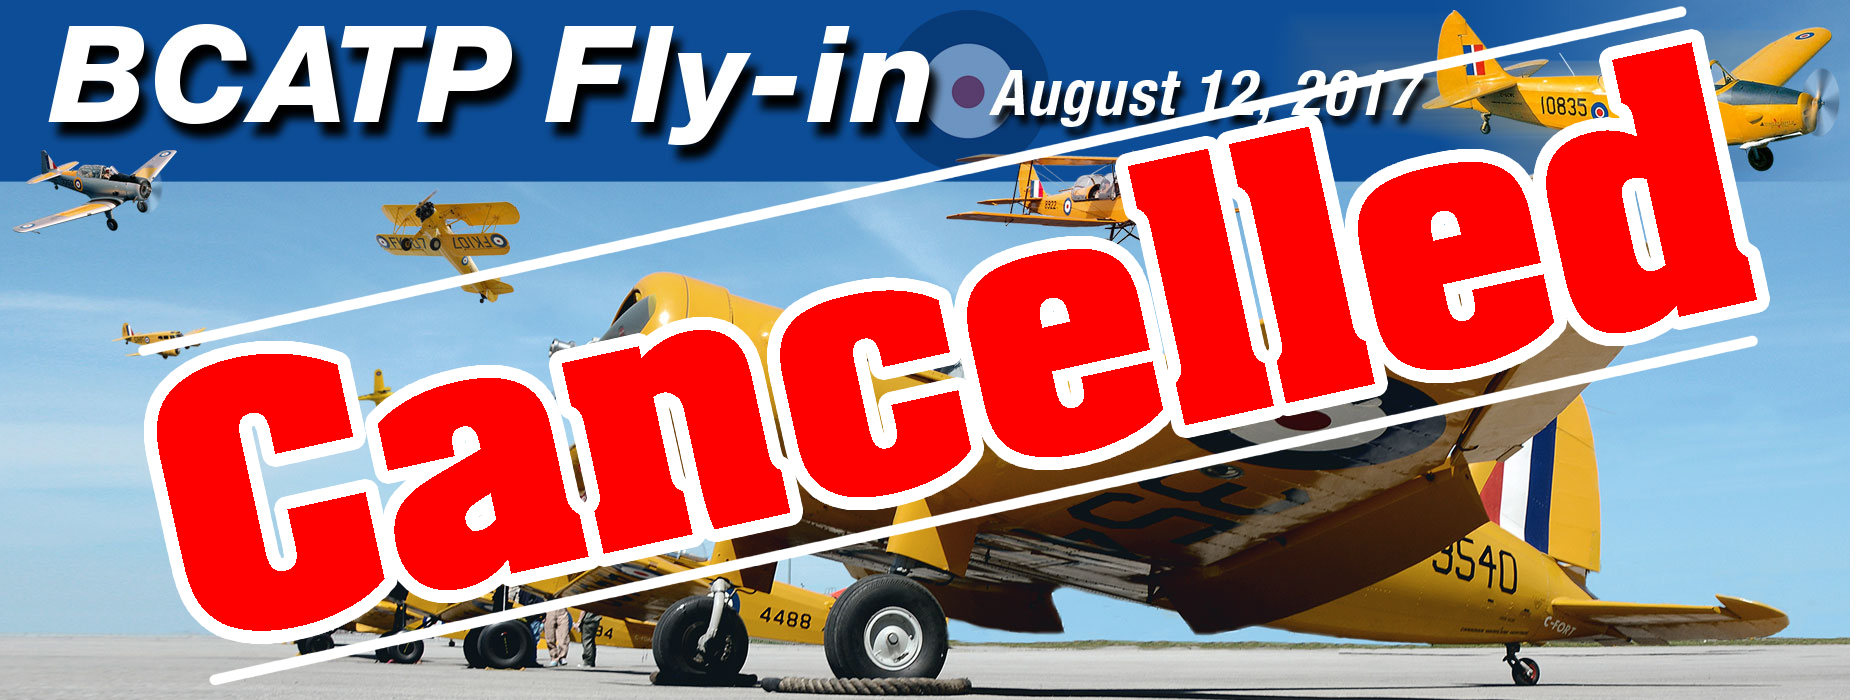 Banner Image for the BCATP Fly-In event